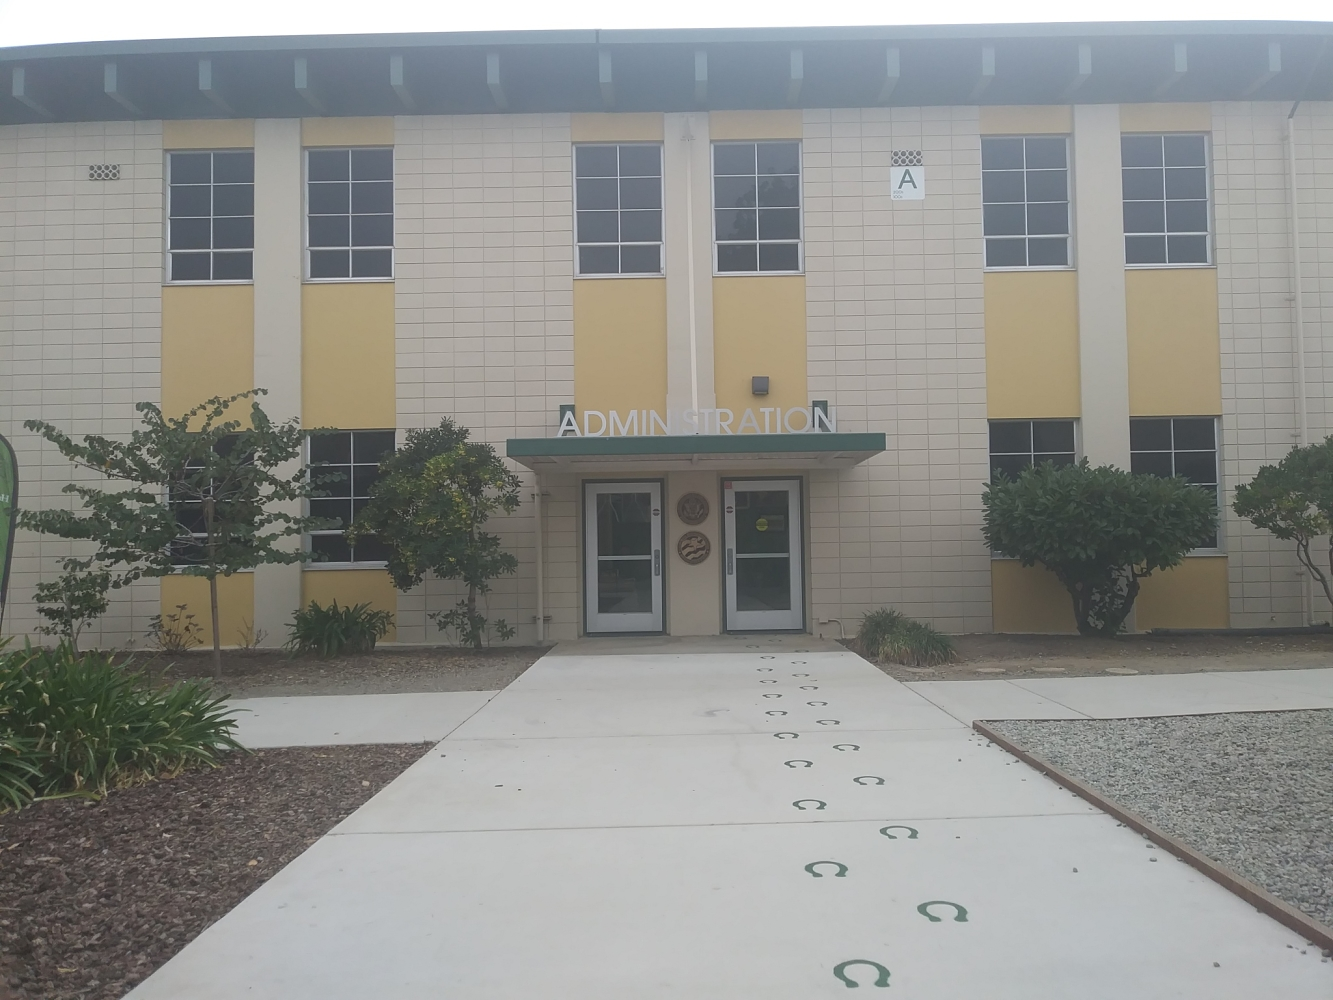 The A Building stands at the center of the HHS campus, and contains both classrooms and offices.